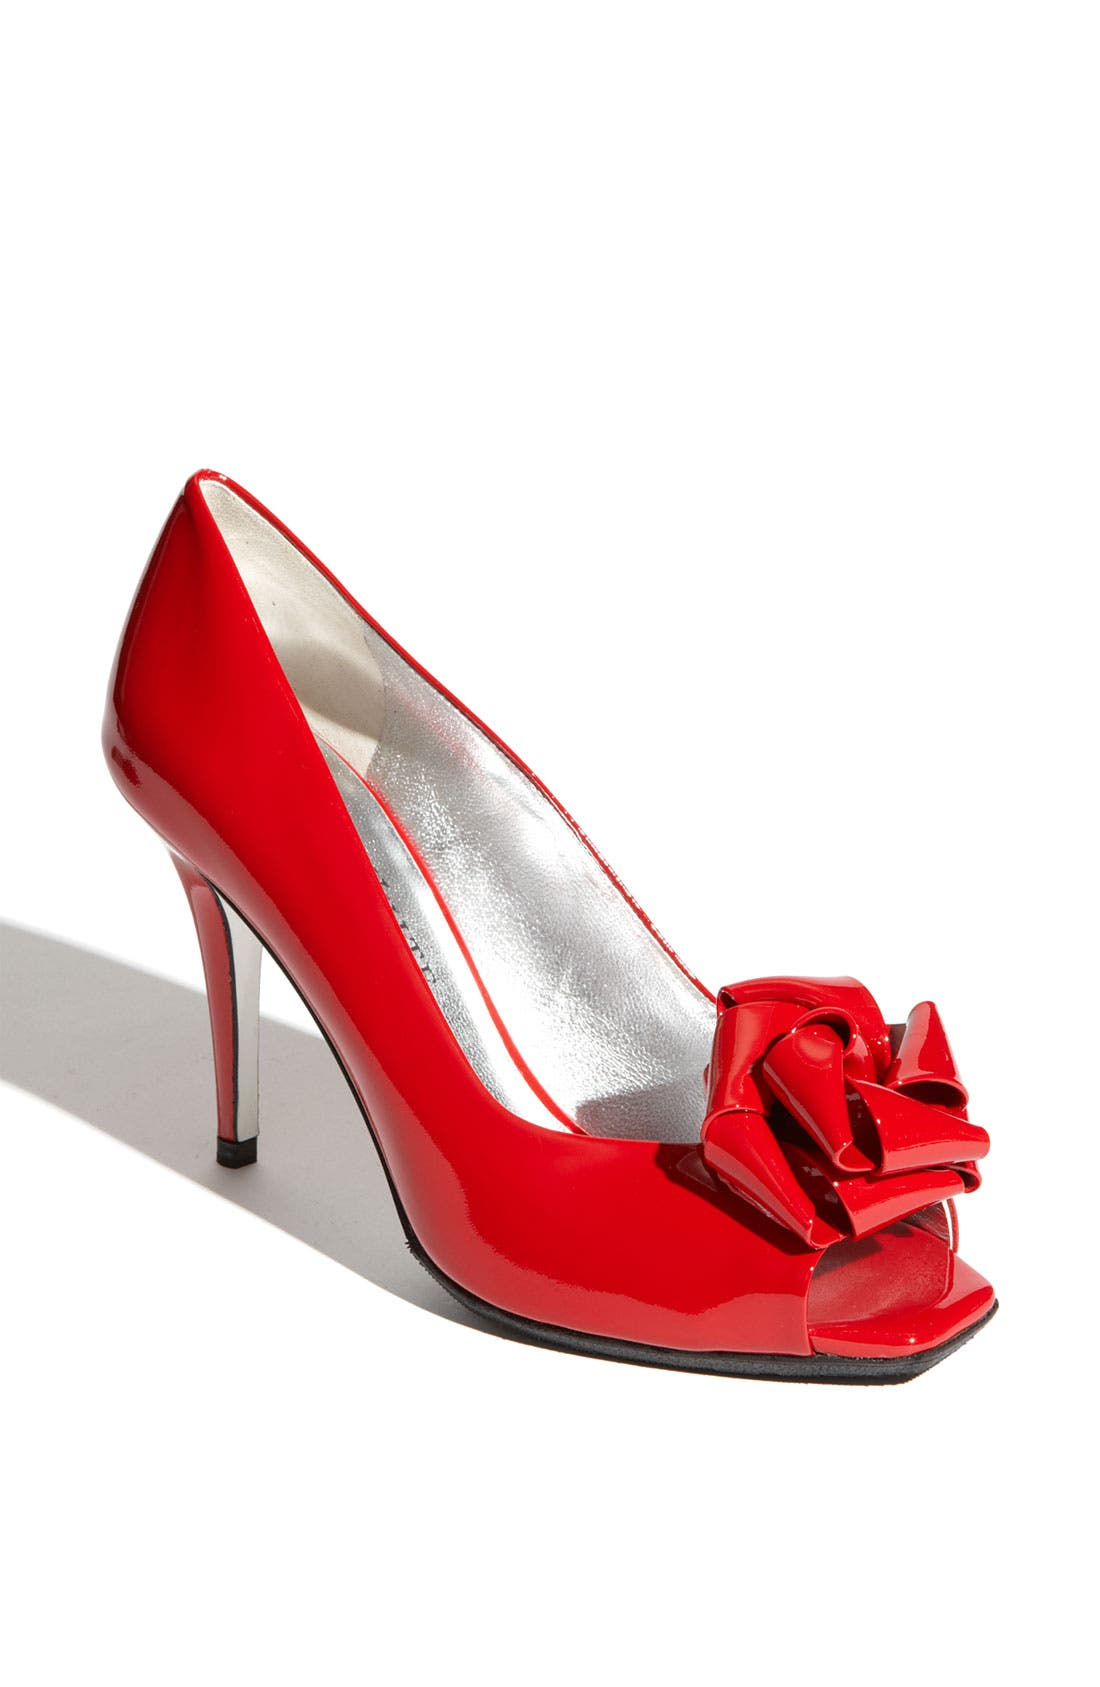 Main Image - Ron White 'Victoria' Pump